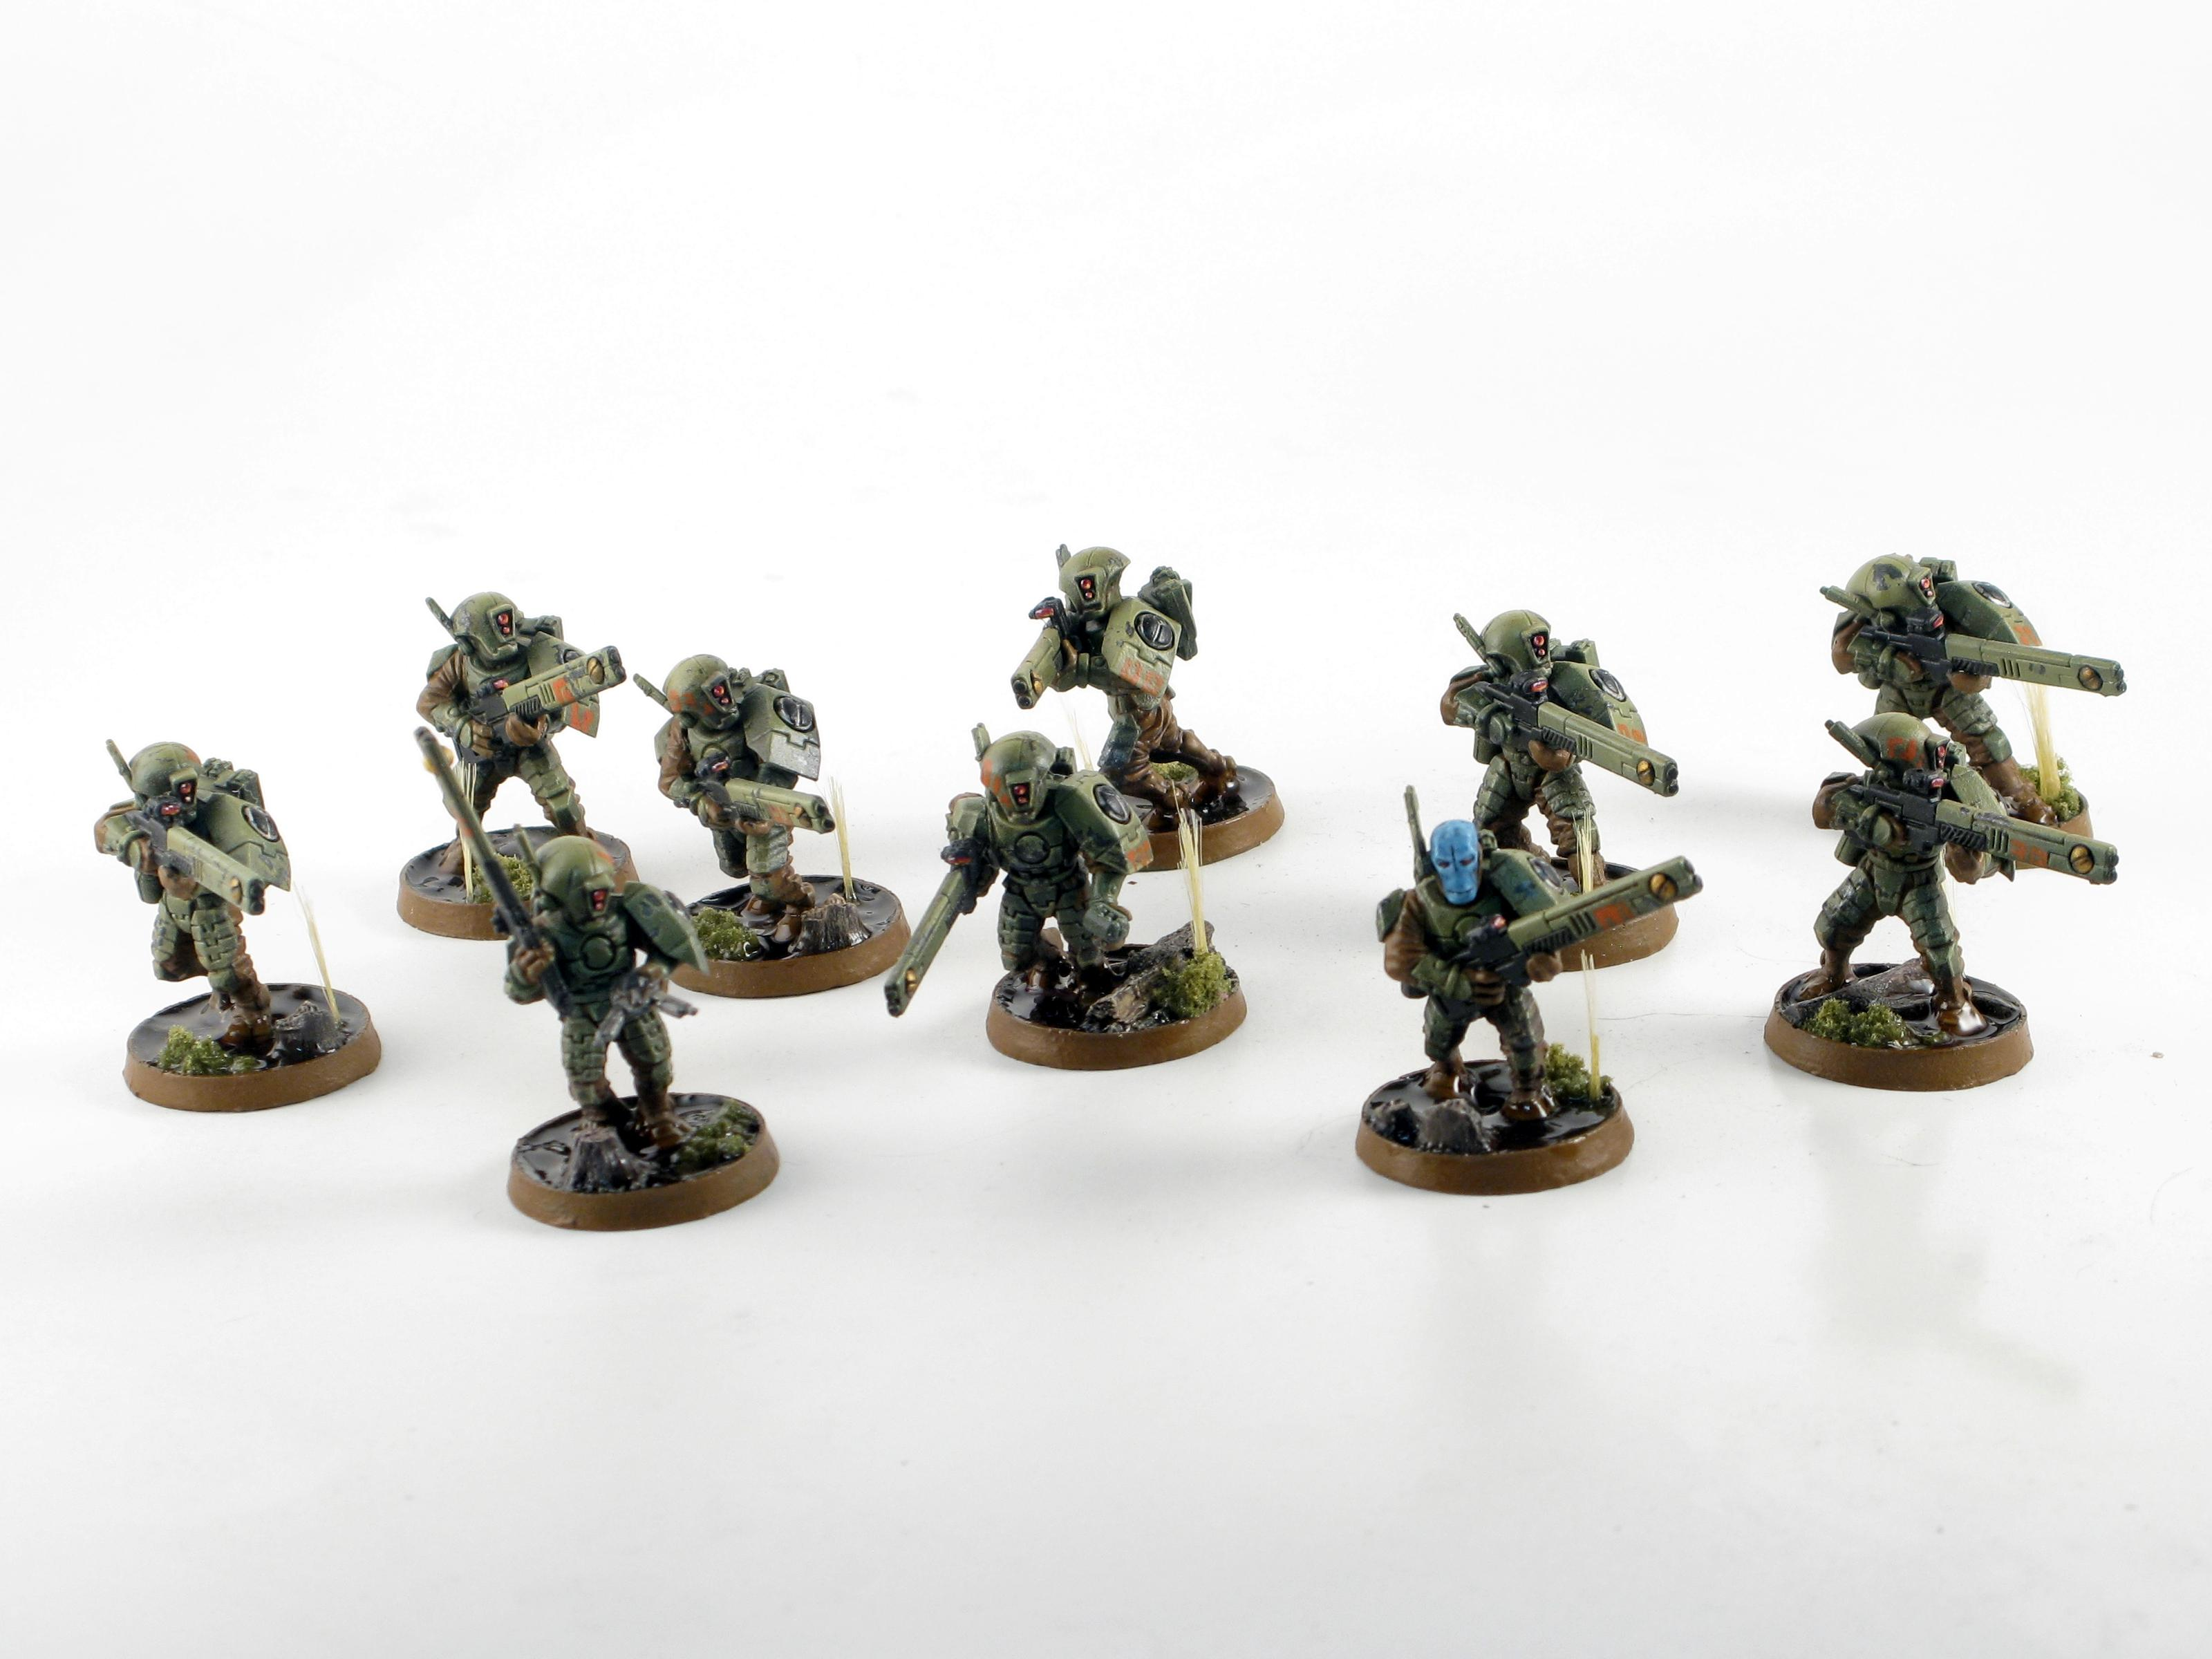 Airbrush, Fire Warriors, Green, Gritty, Oil Wash, Realistic Water, Secret Weapon, Swamp, Tau, Water Effects